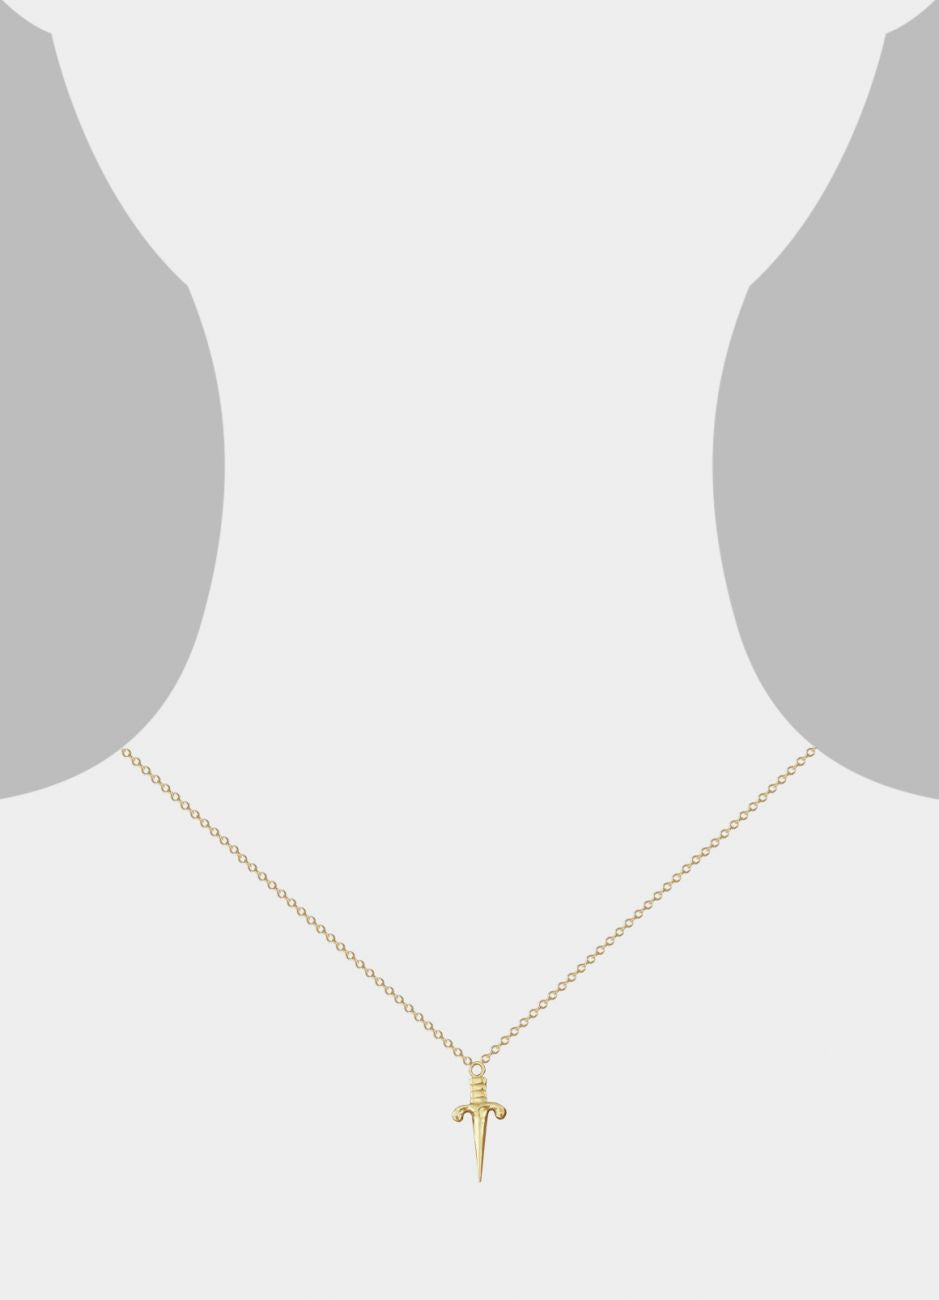 Dagger Necklace<br /><i><small>14K Yellow Gold</small></i><br />